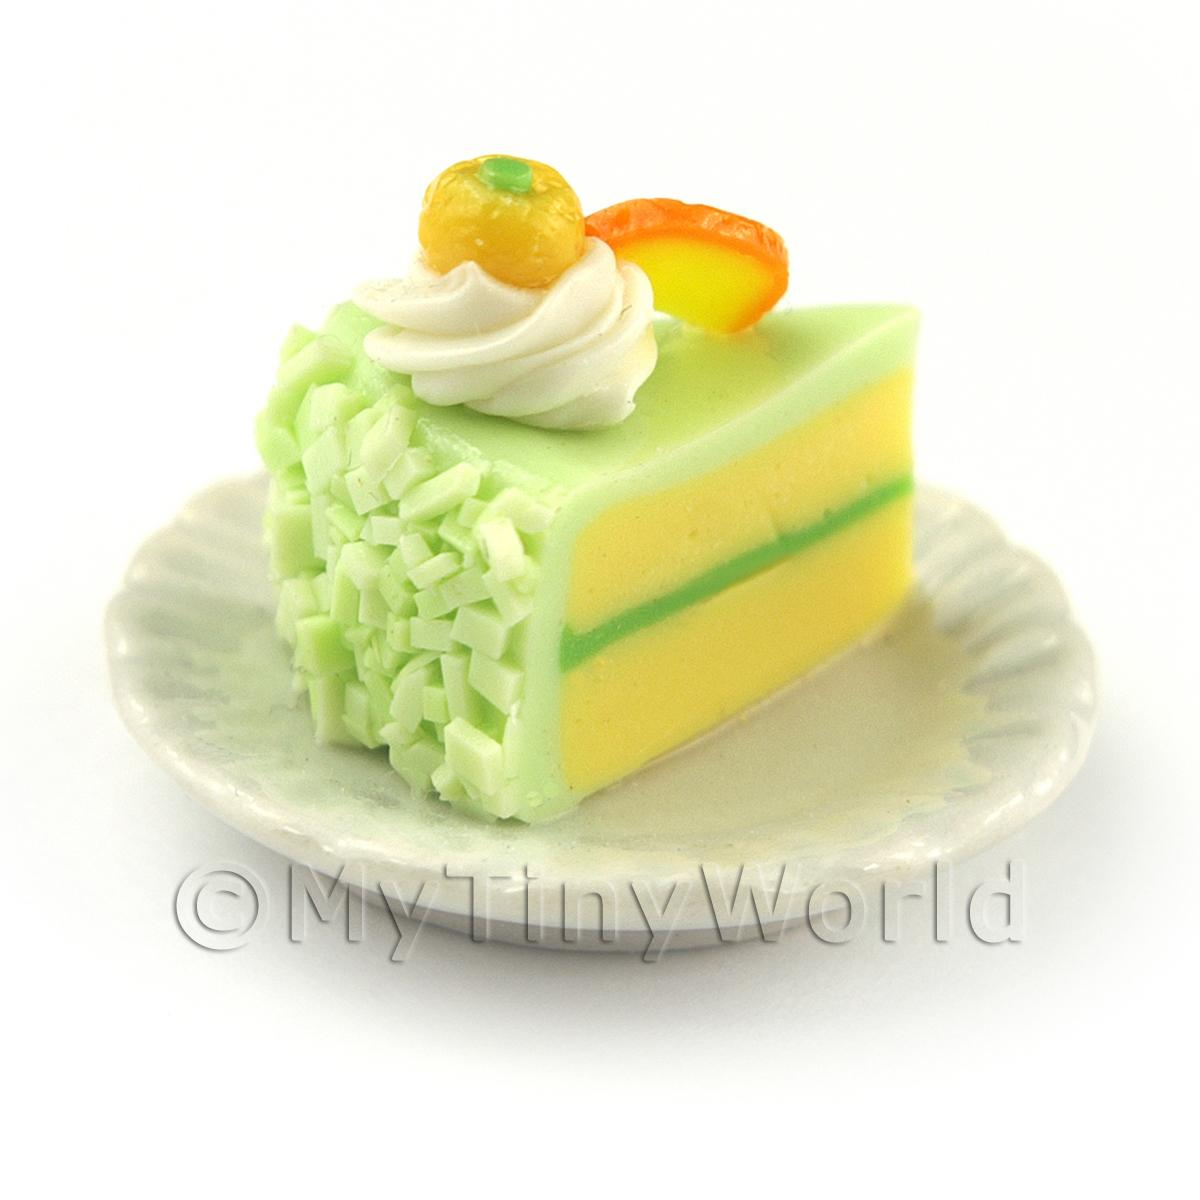 Dolls House Miniature Individual Orange and Kumquat Cake Slice